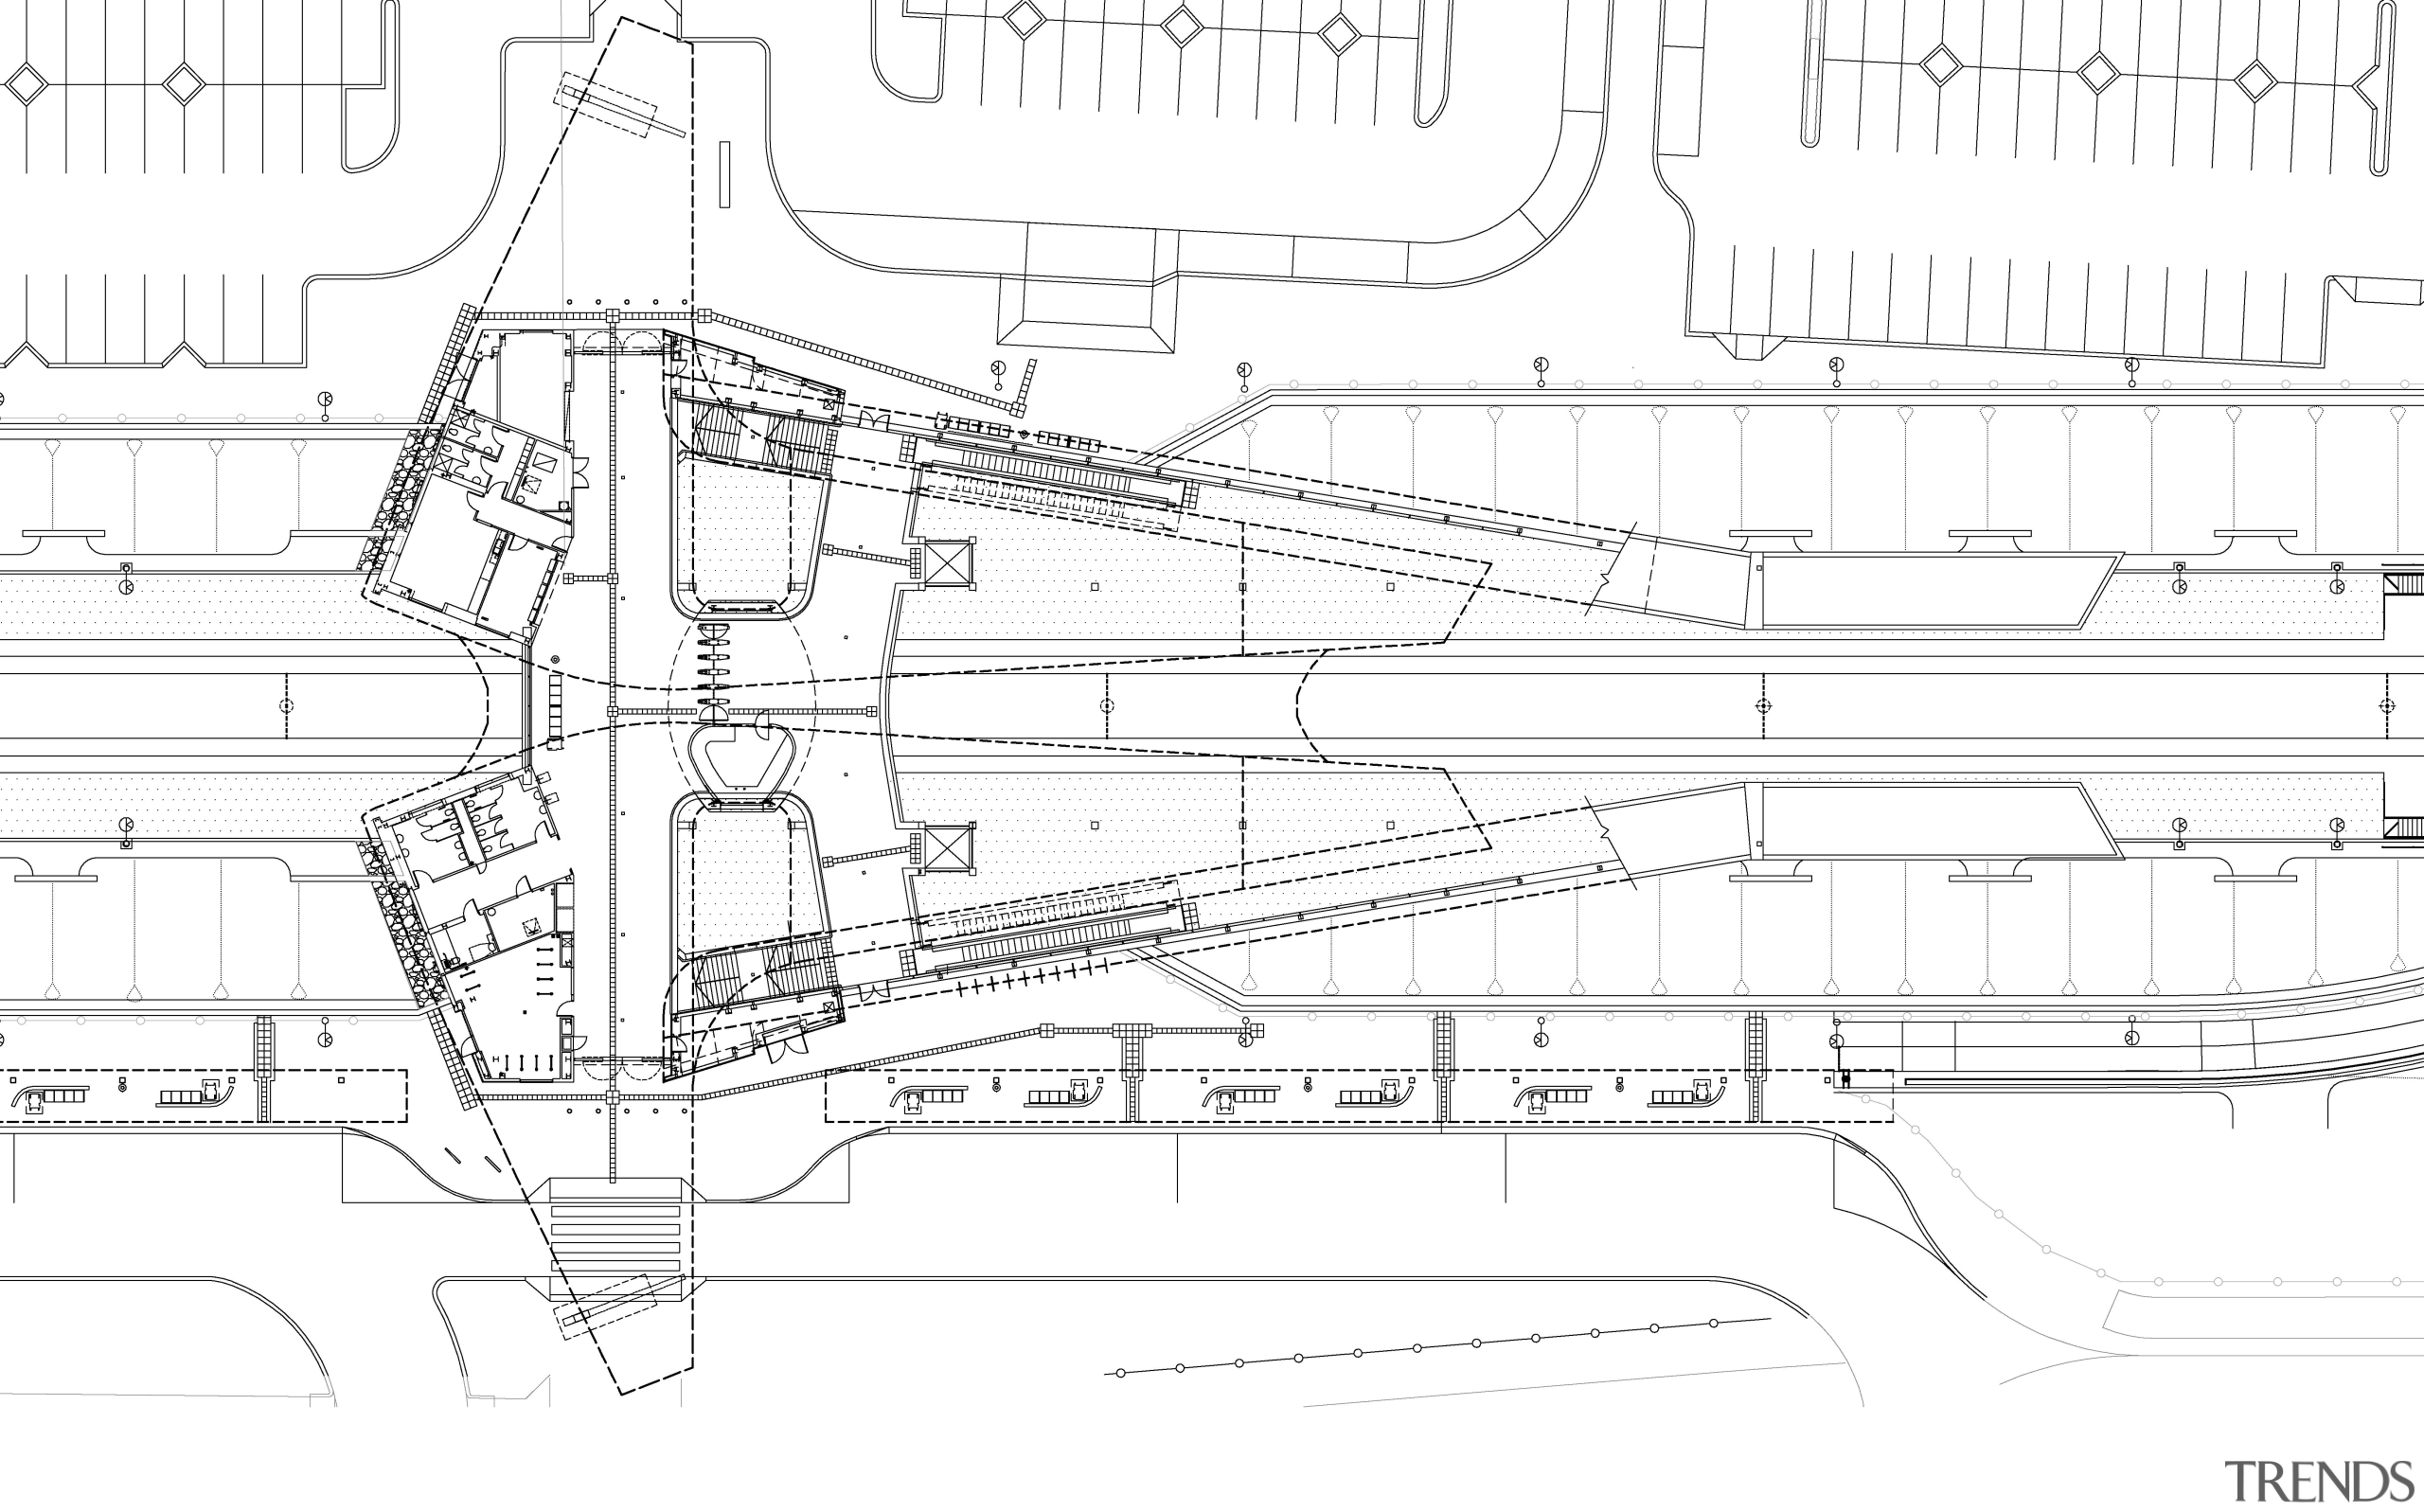 This plan shows the butterfly-shaped roof form of angle, architecture, area, artwork, black and white, design, diagram, drawing, engineering, line, line art, plan, product design, structure, technical drawing, white